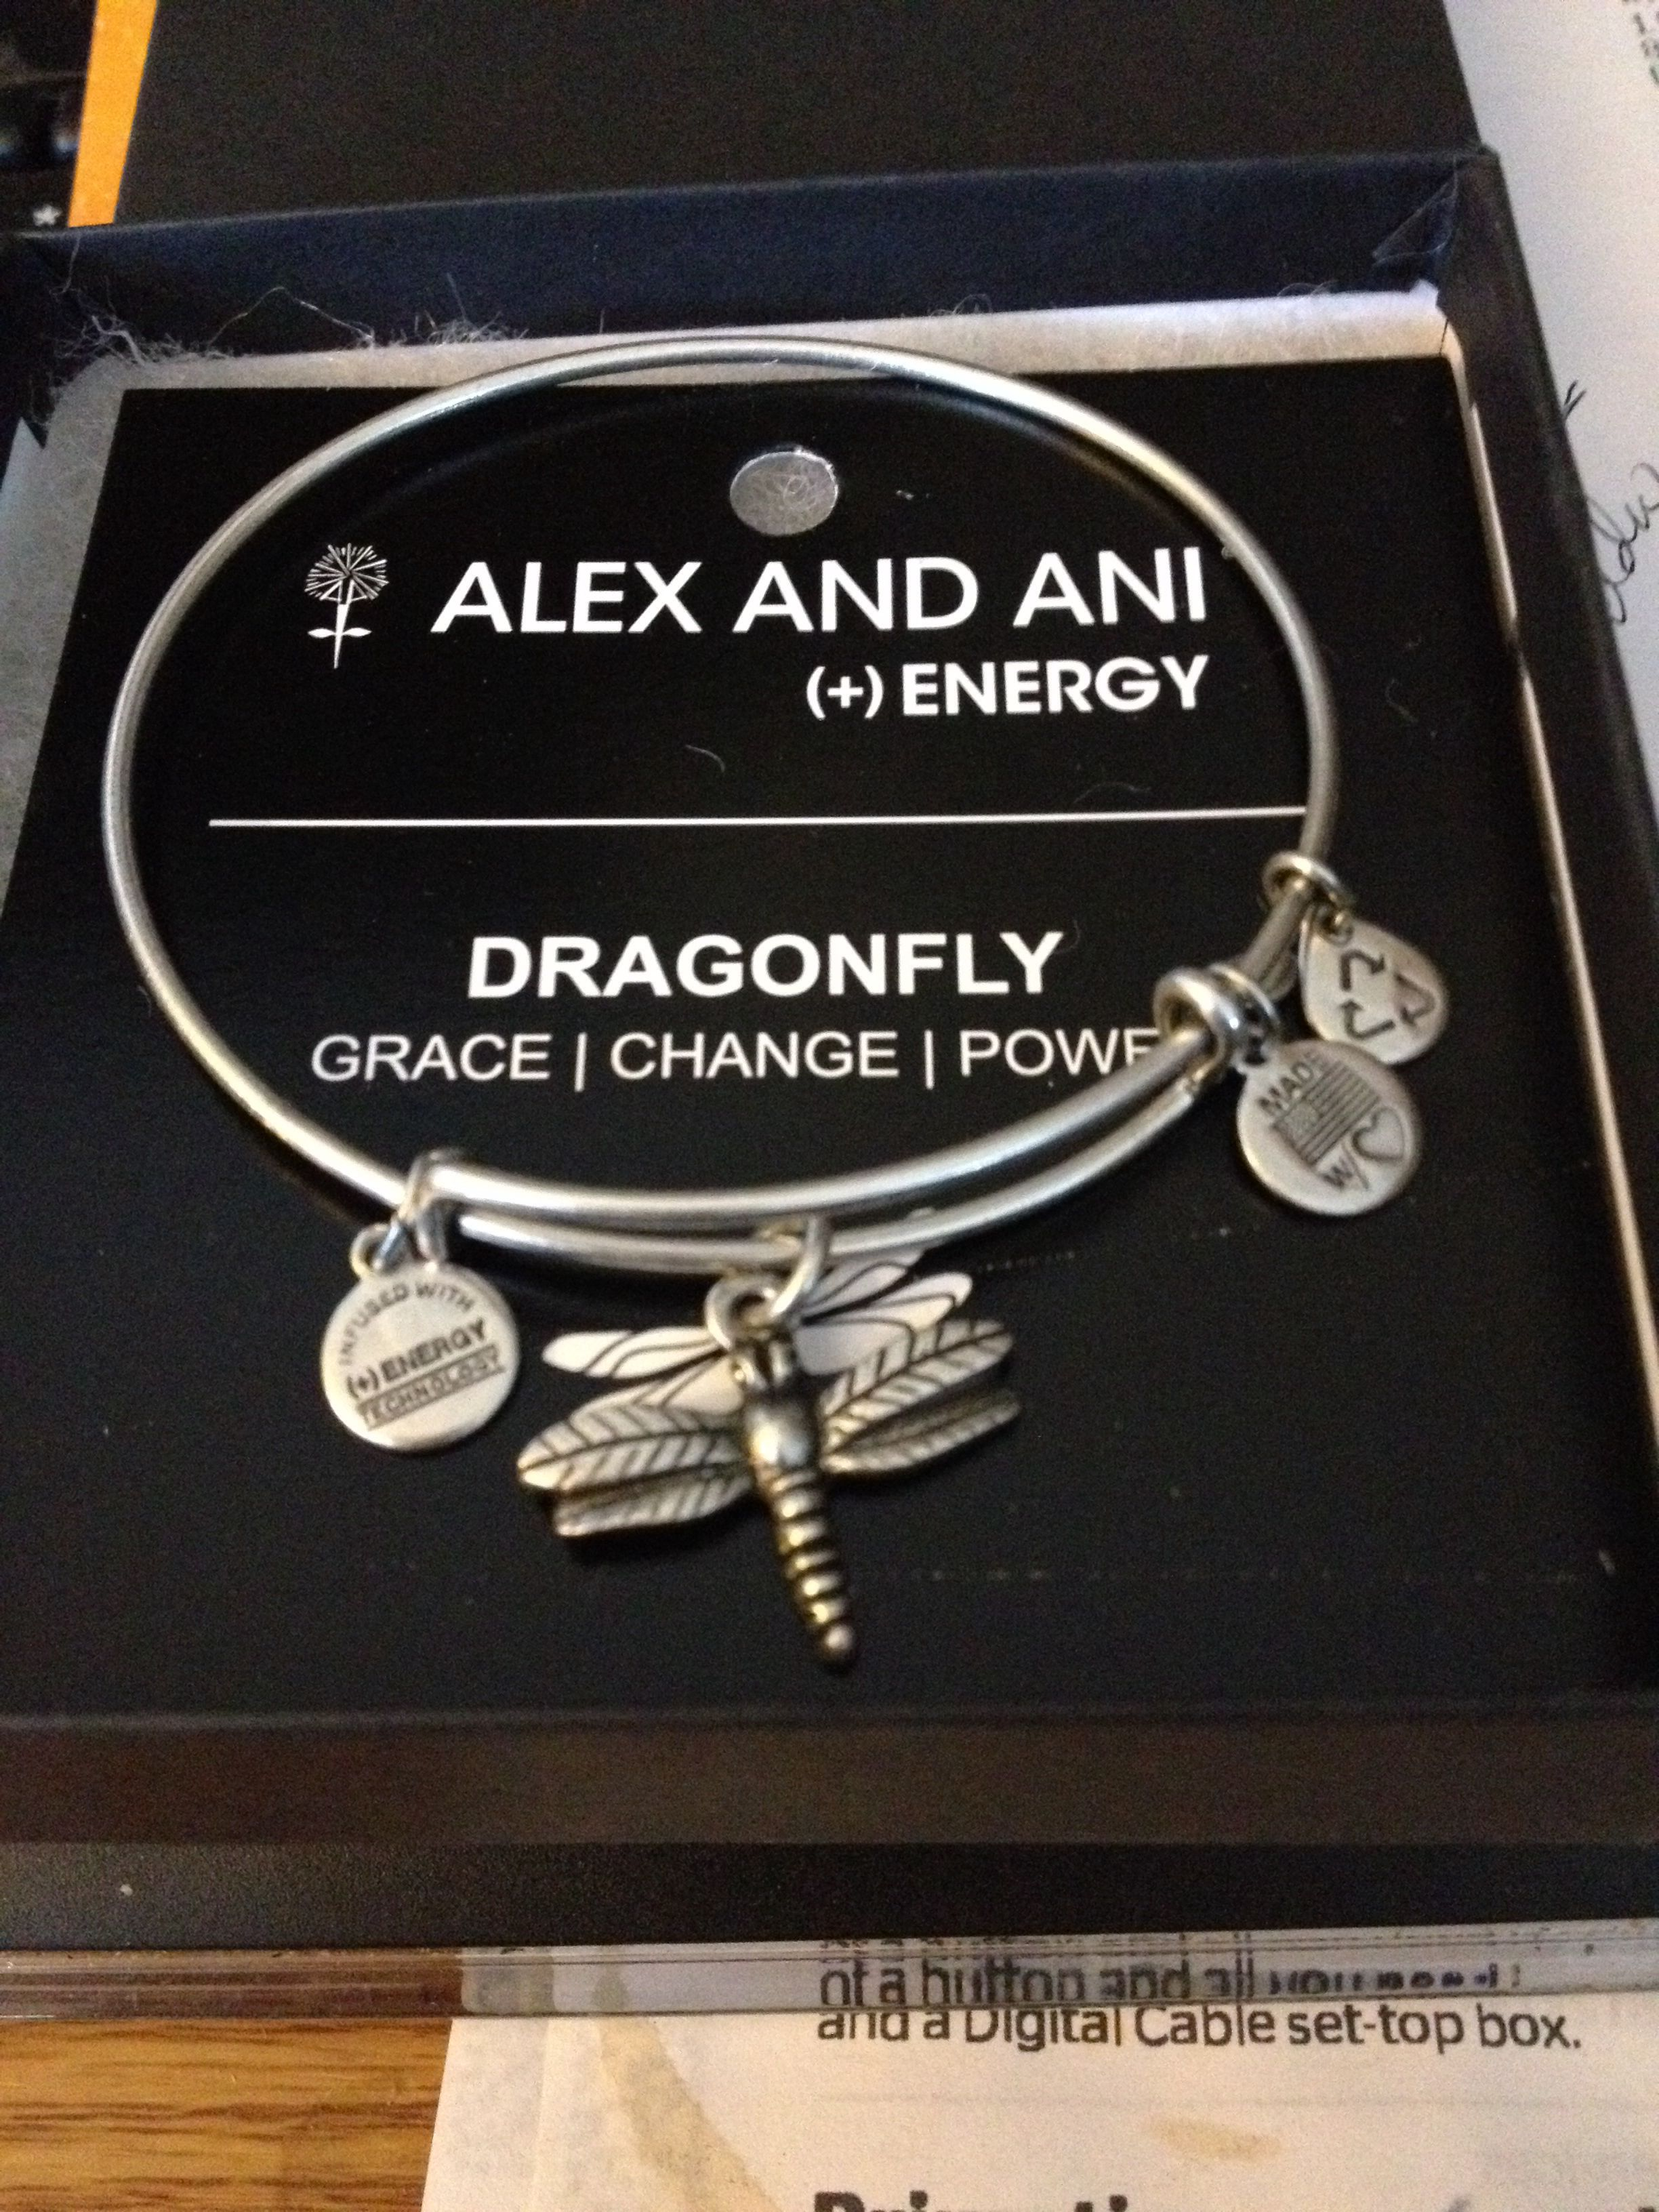 Dragonfly Alex And Ani Bracelet Of The Month Jan 2017